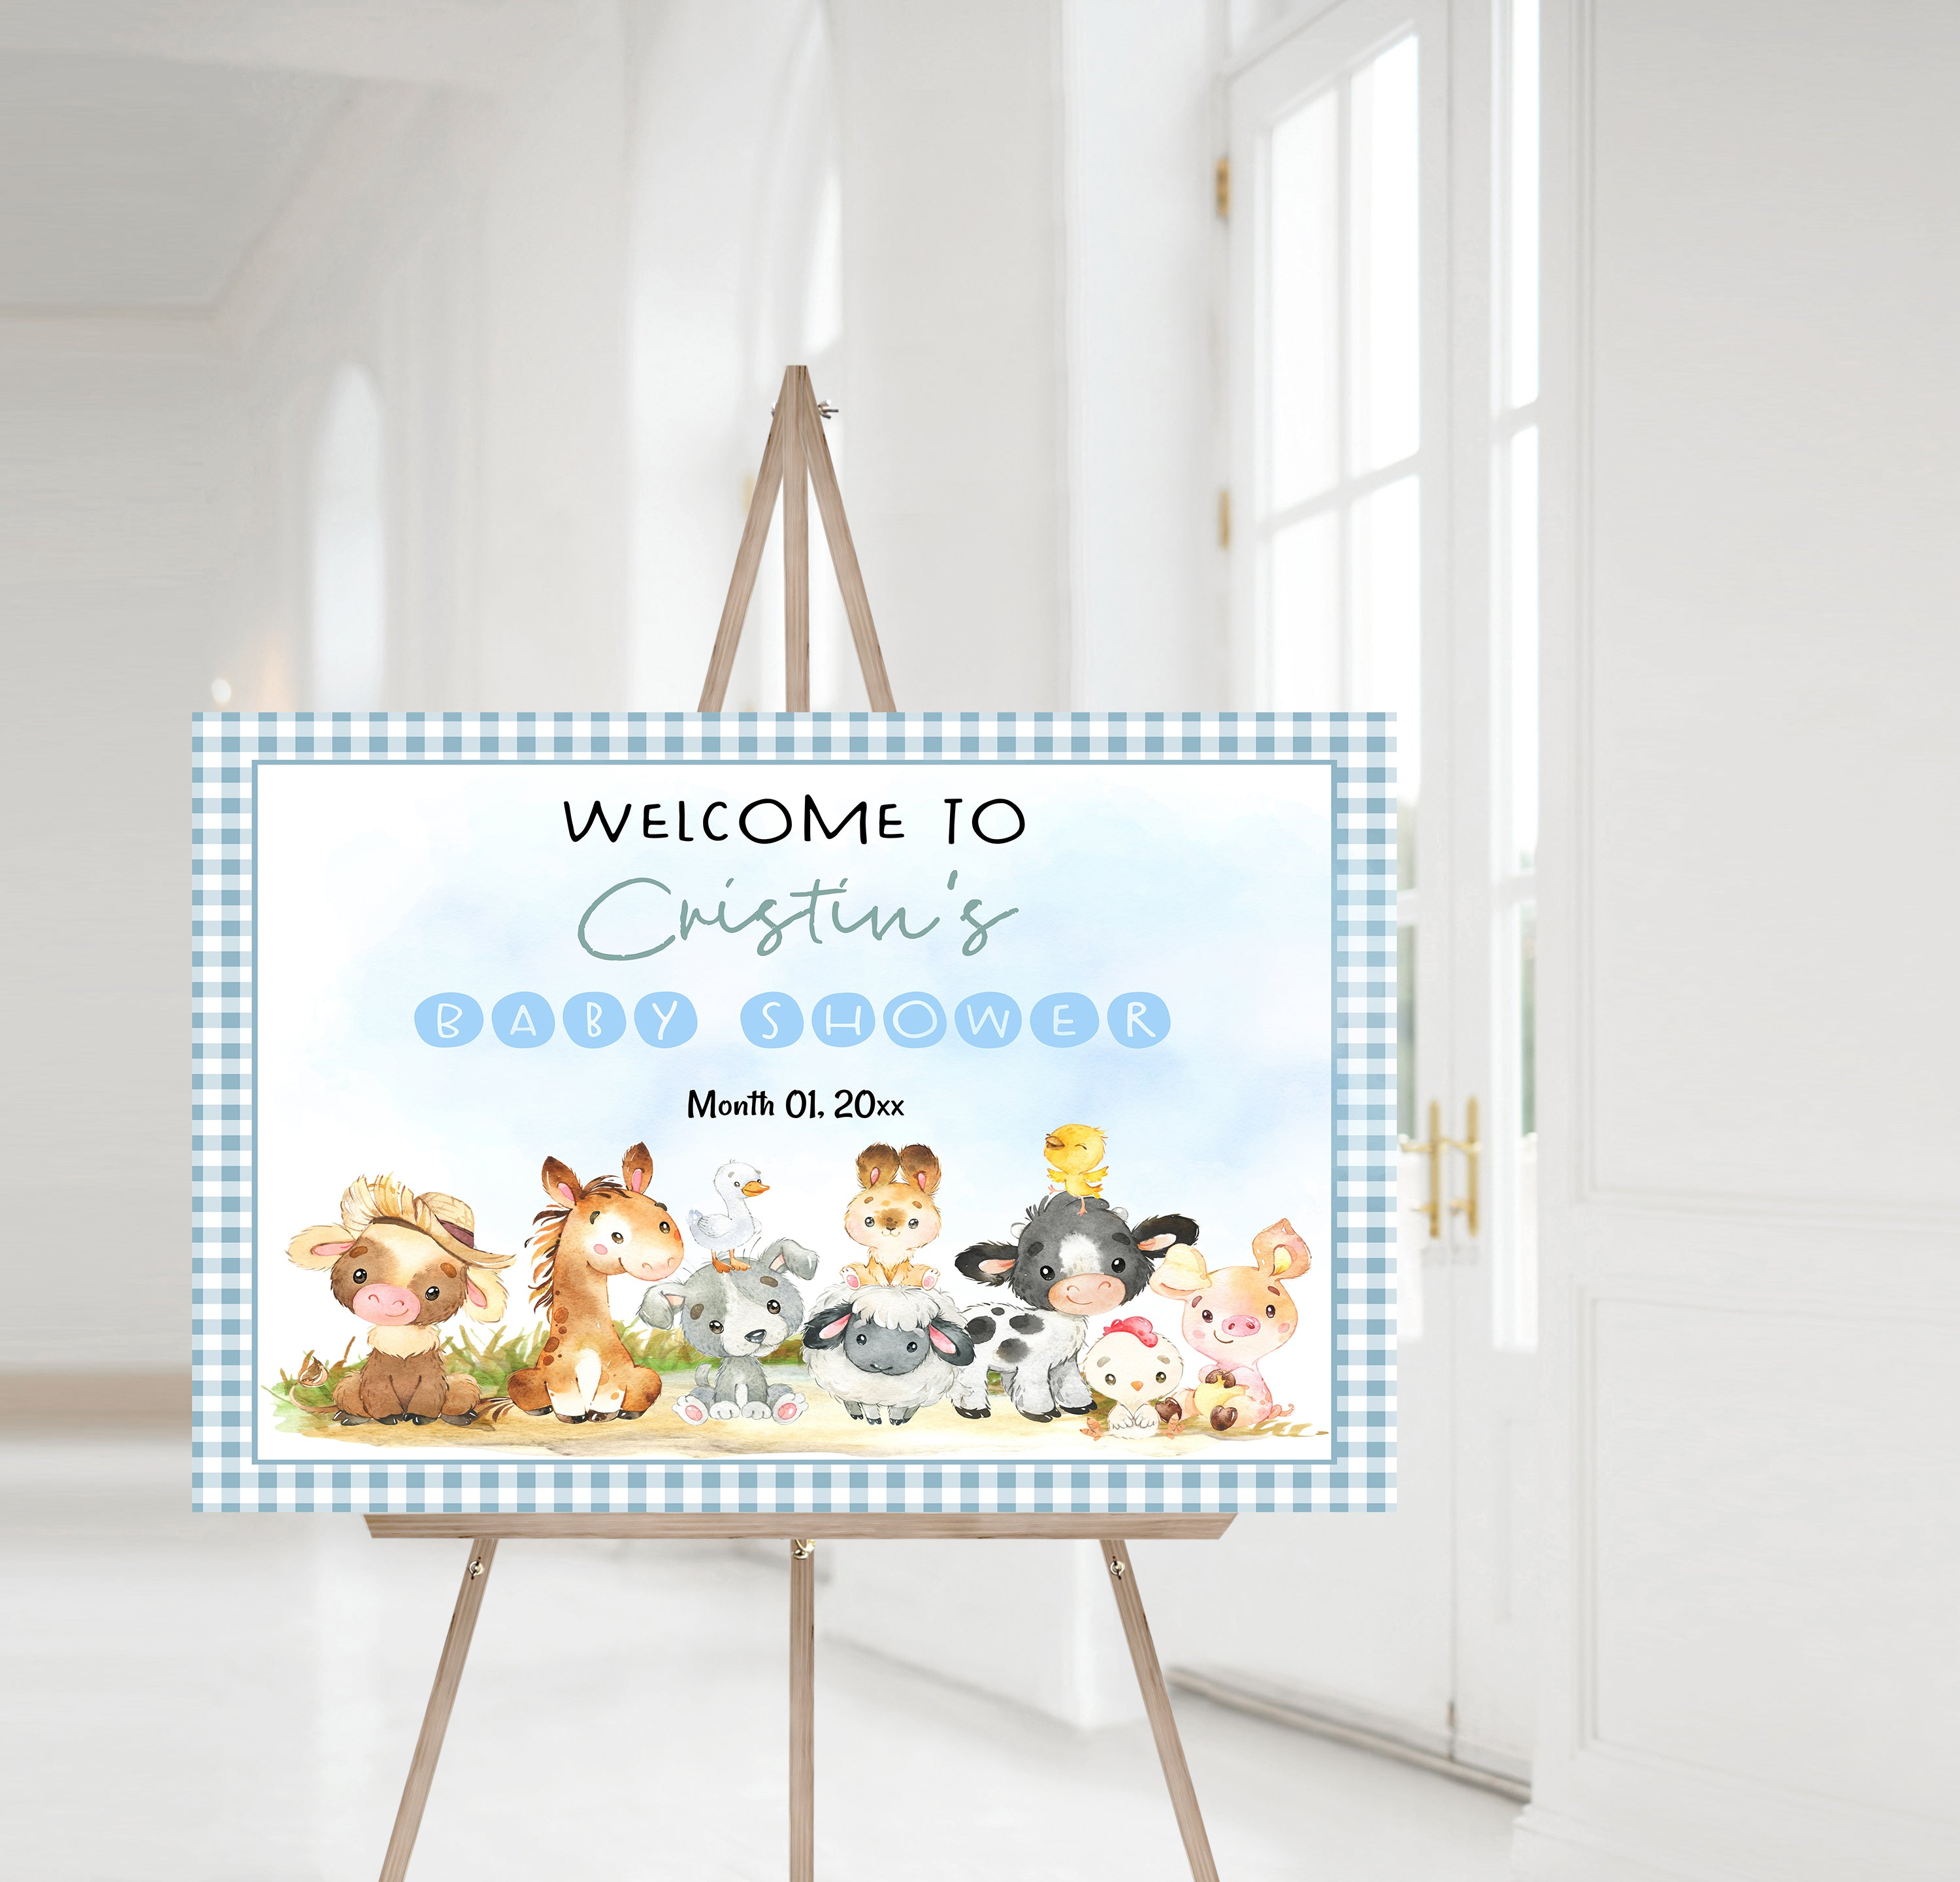 Editable Farm Baby Shower Welcome Sign | Farm theme shower decorations - 11C